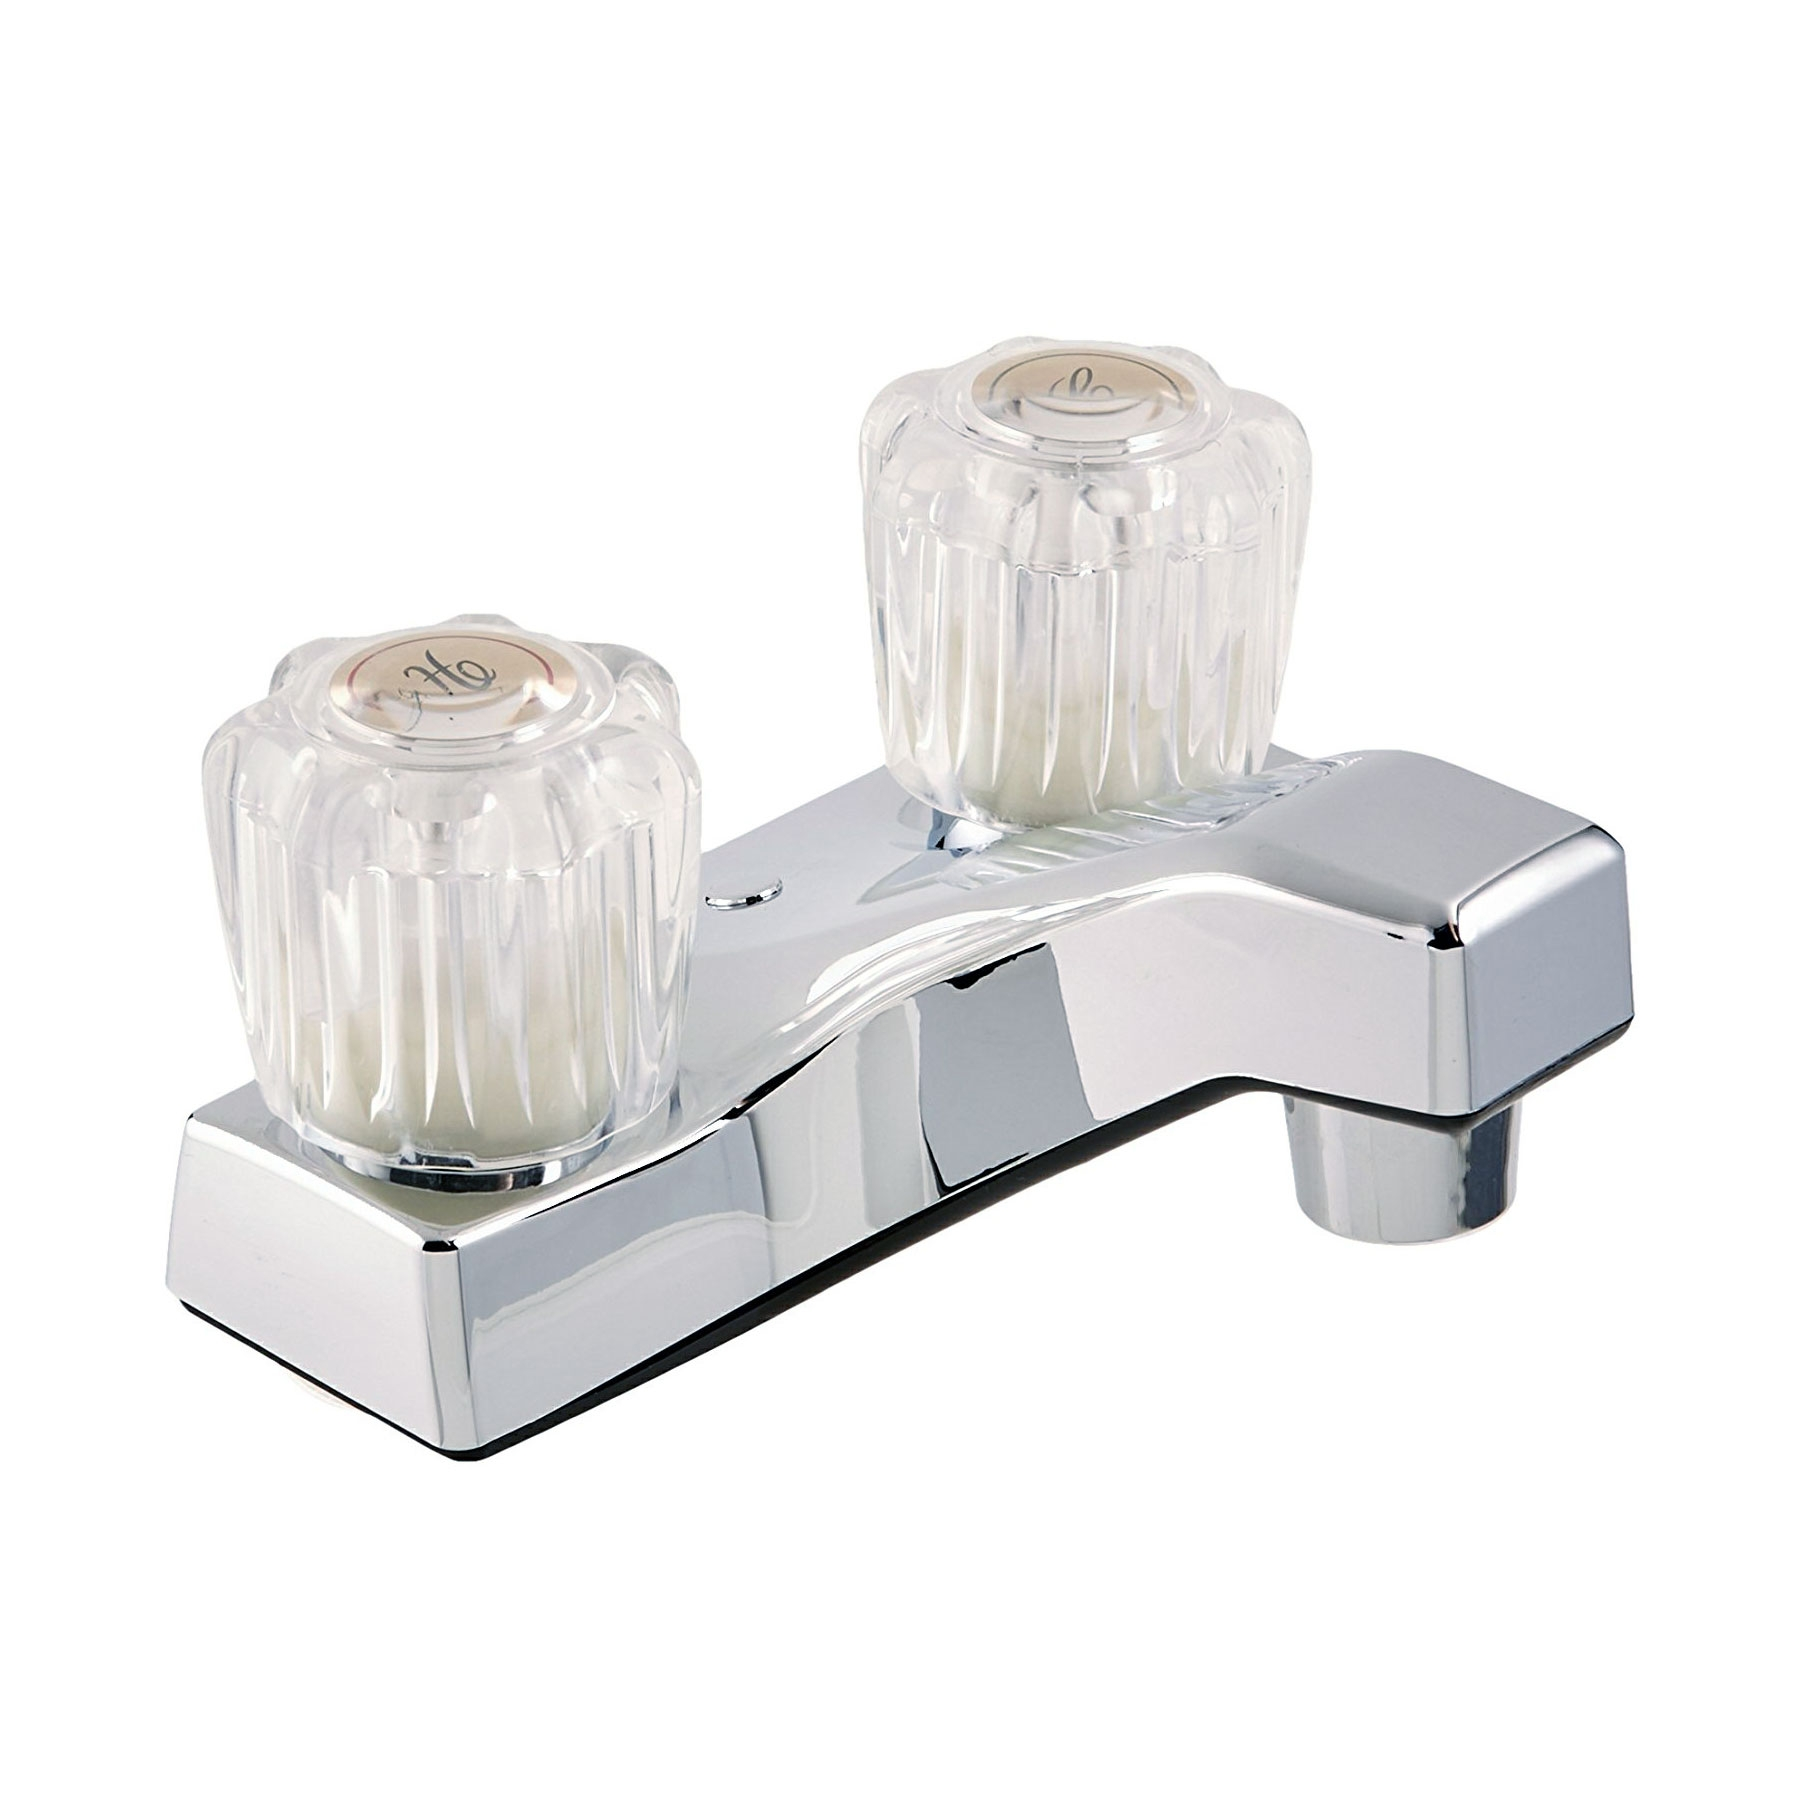 Two Handle RV Lavatory Bathroom Faucet Clear Crystal Acrylic Knobs, Chrome Finish, for Travel Trailers, Campers, Motorhomes